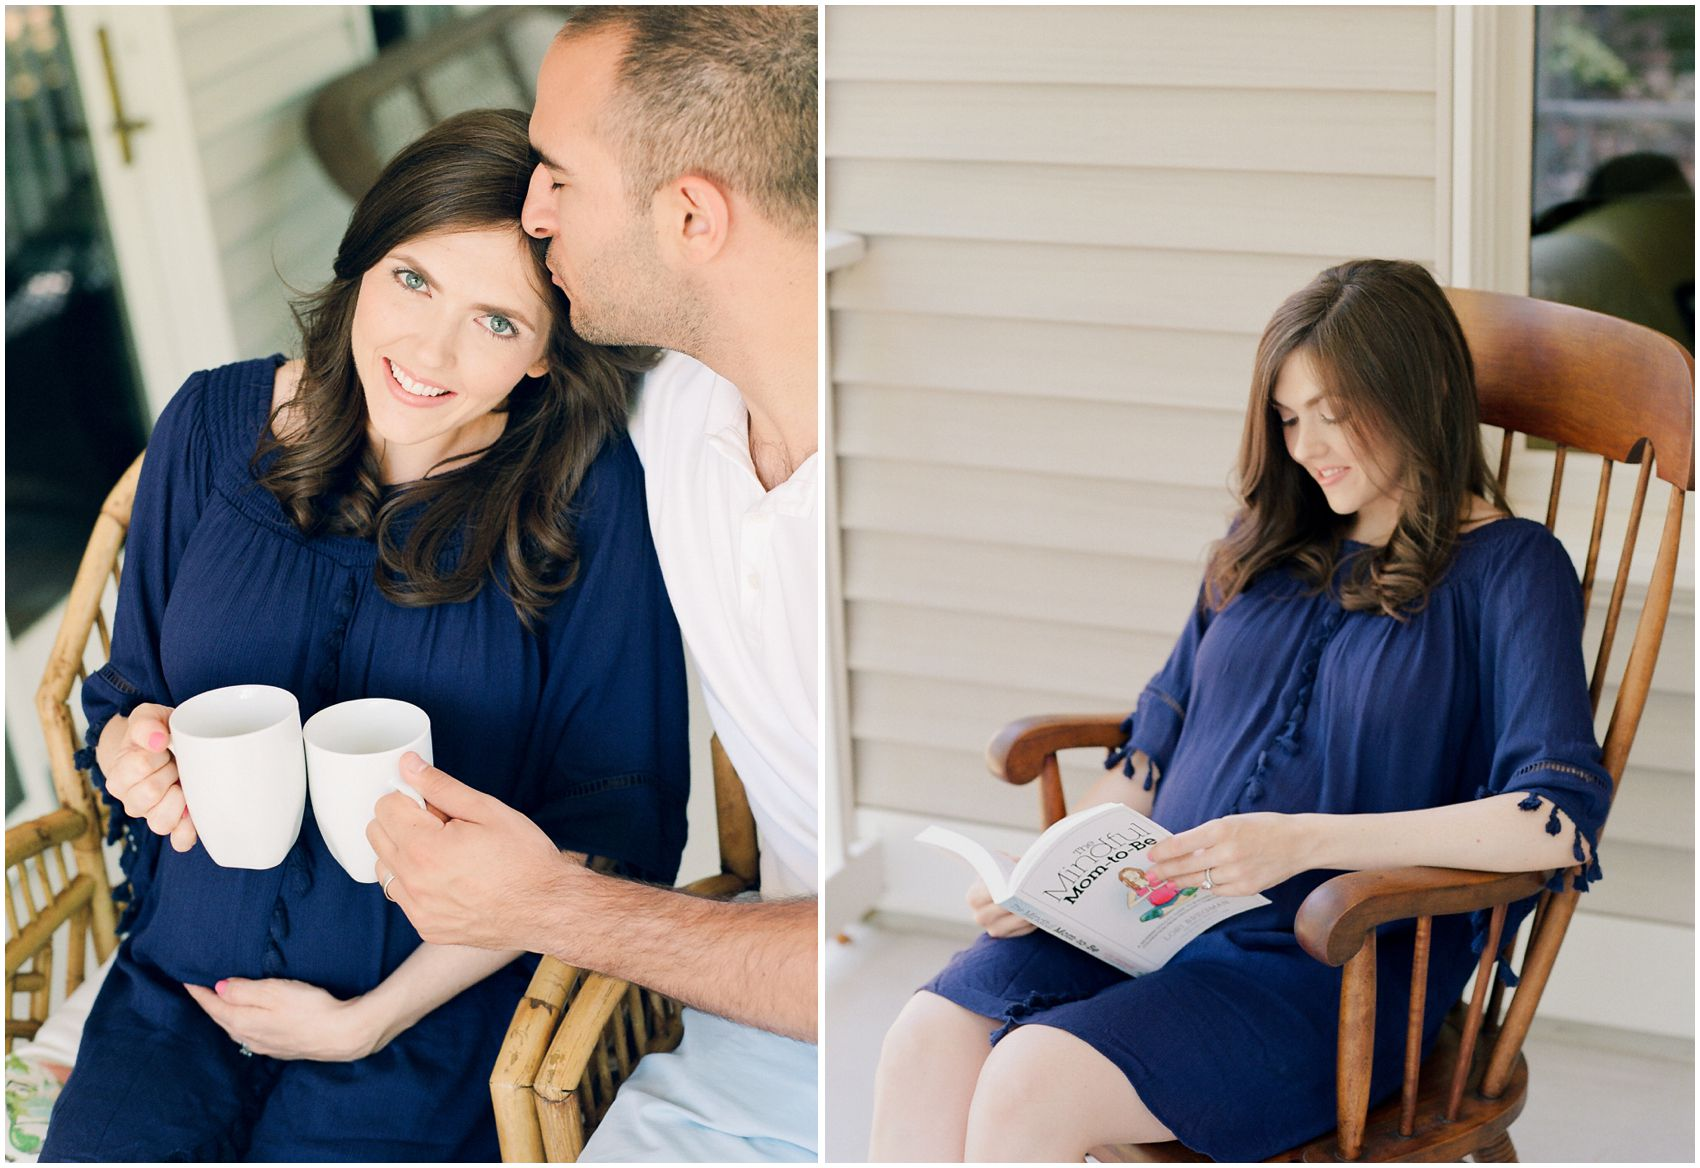 NYC maternity photography with pregnant mom wearing a gorgeous blue maternity dress